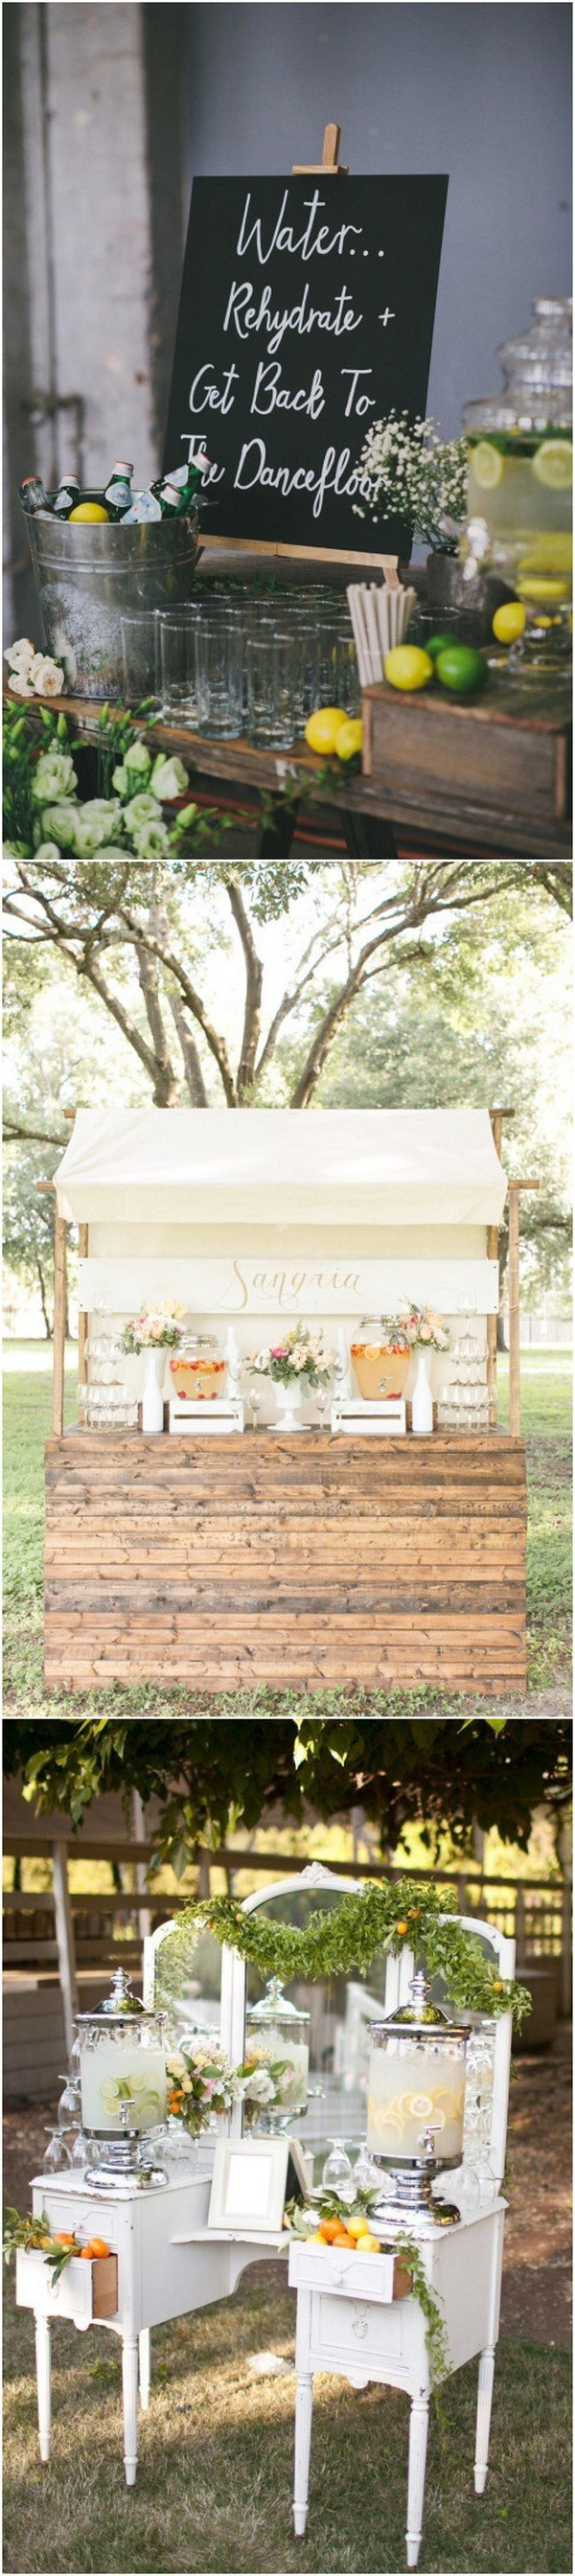 20 Amazing Drink Stations For Outdoor Wedding Ideas